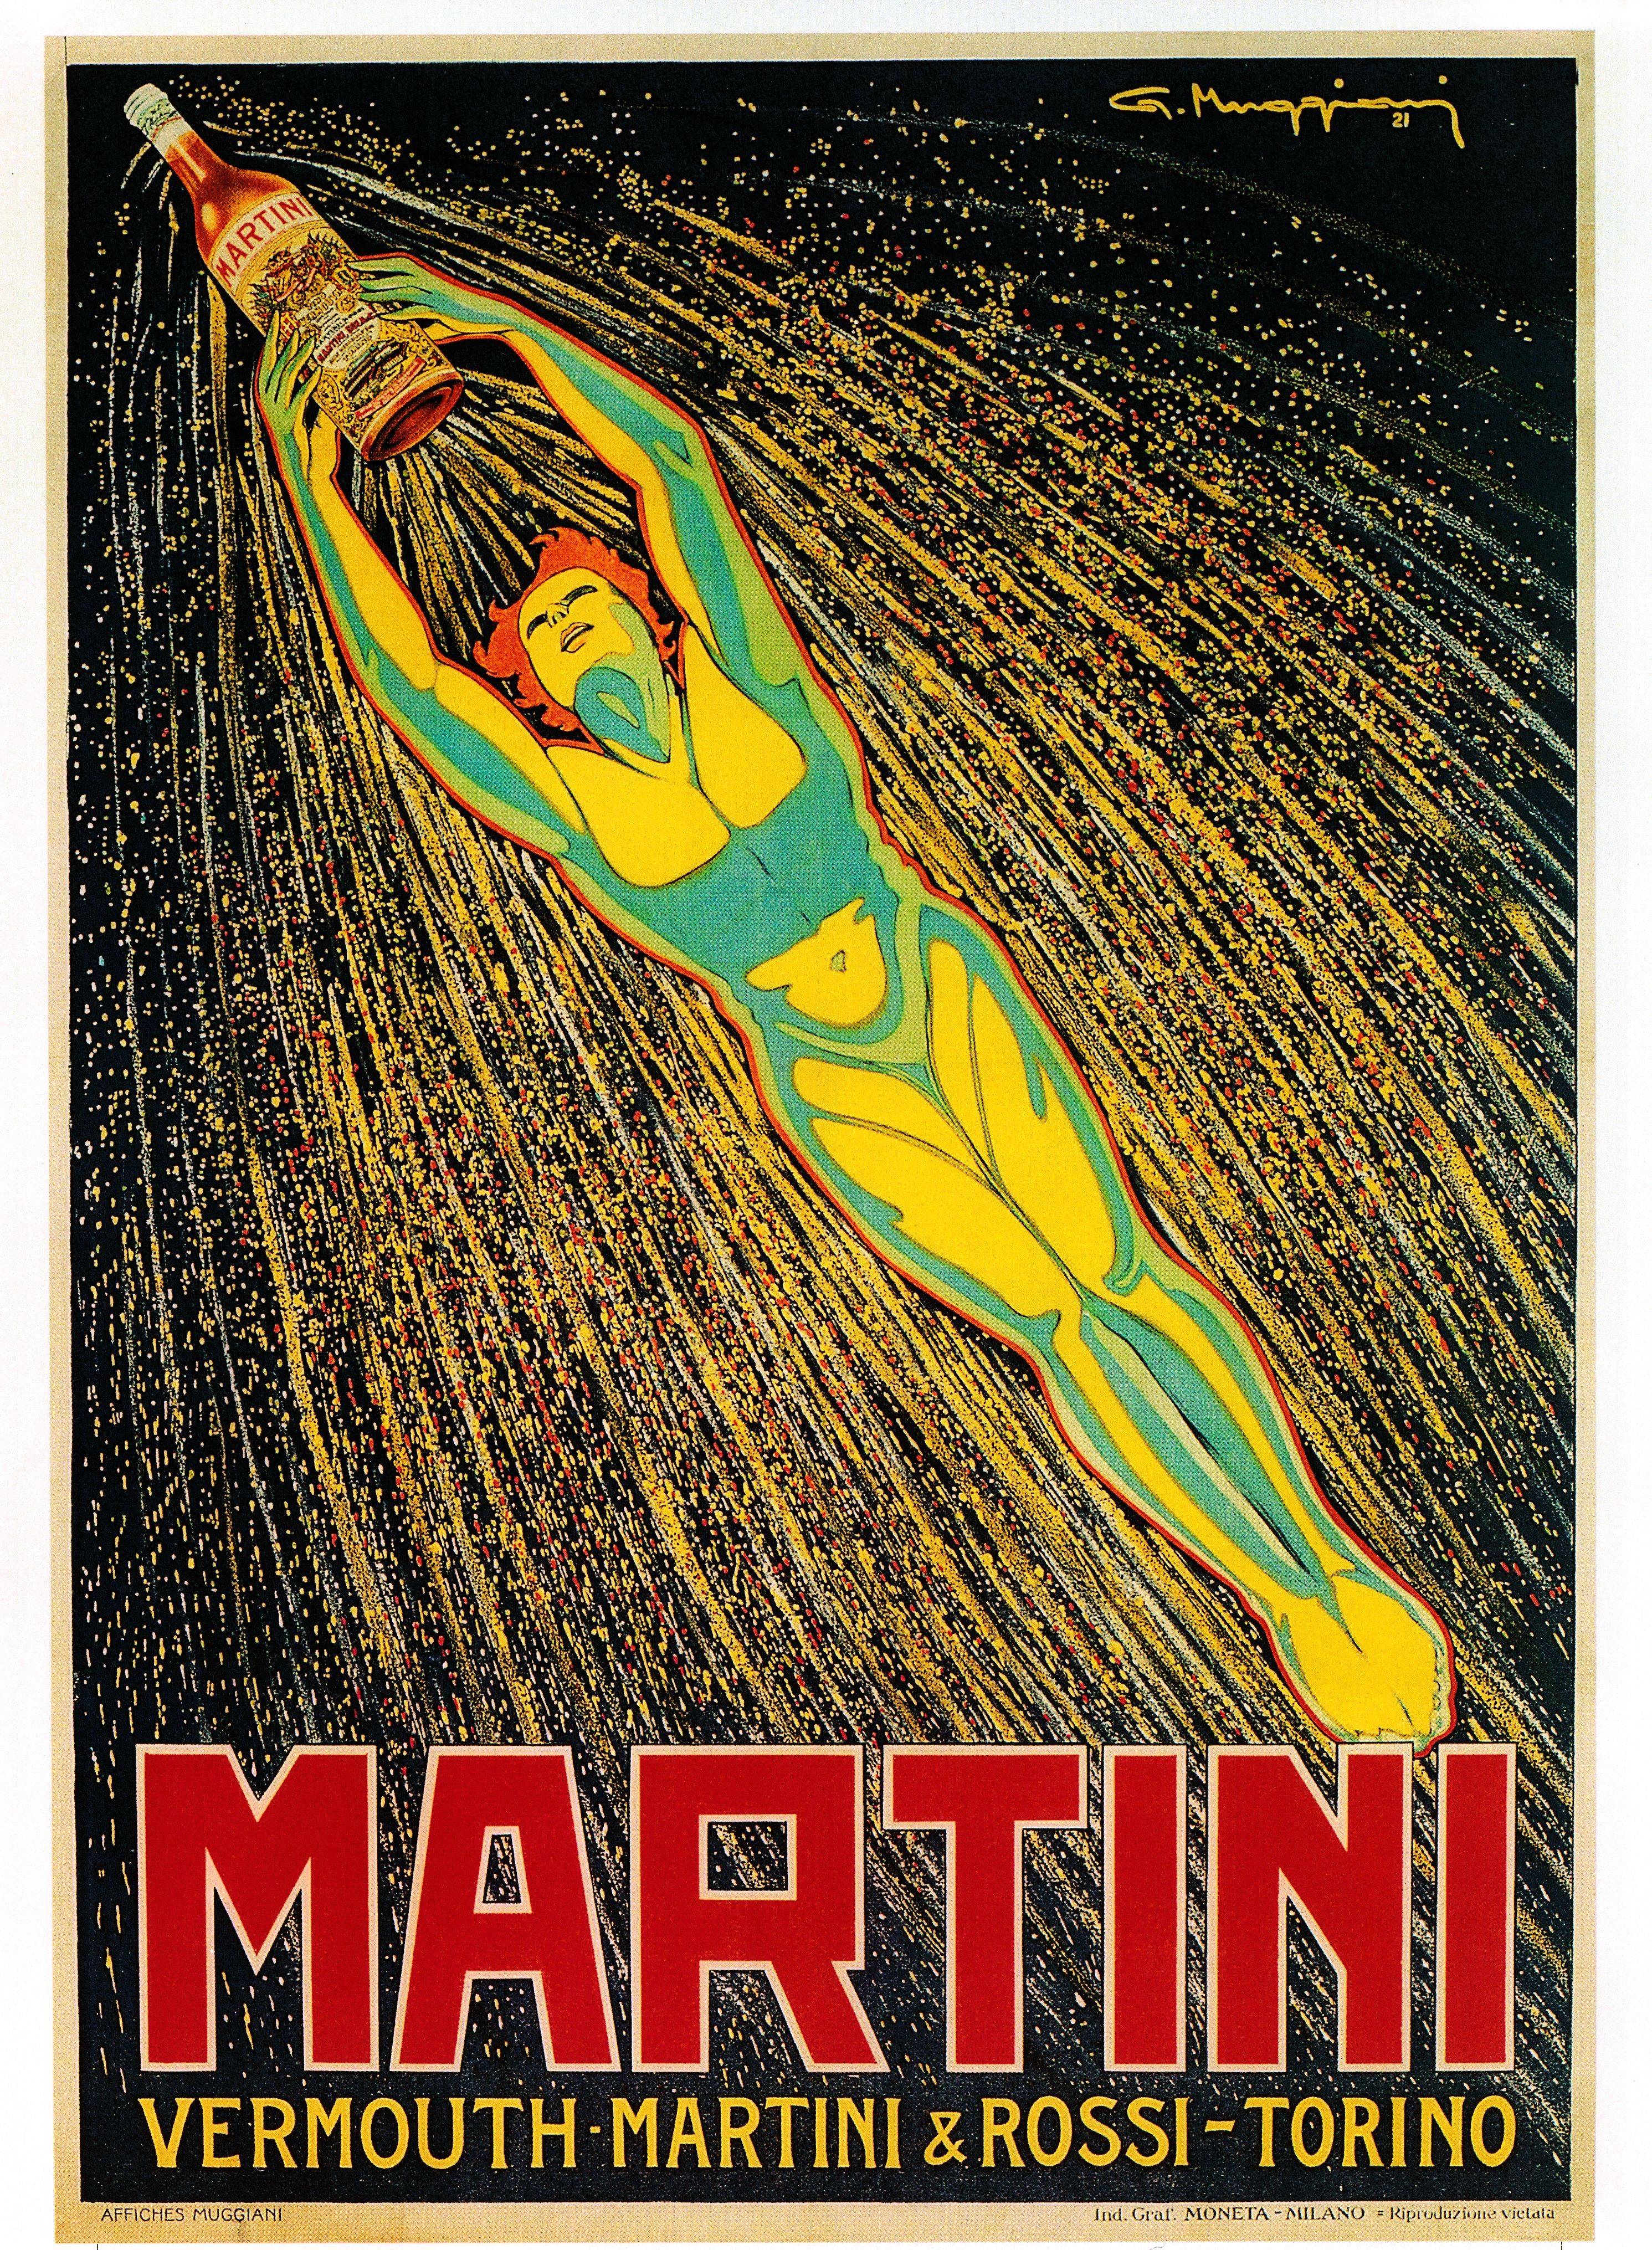 Beautiful #vintage MARTINI poster. Pin now for inspiration later. #150Years